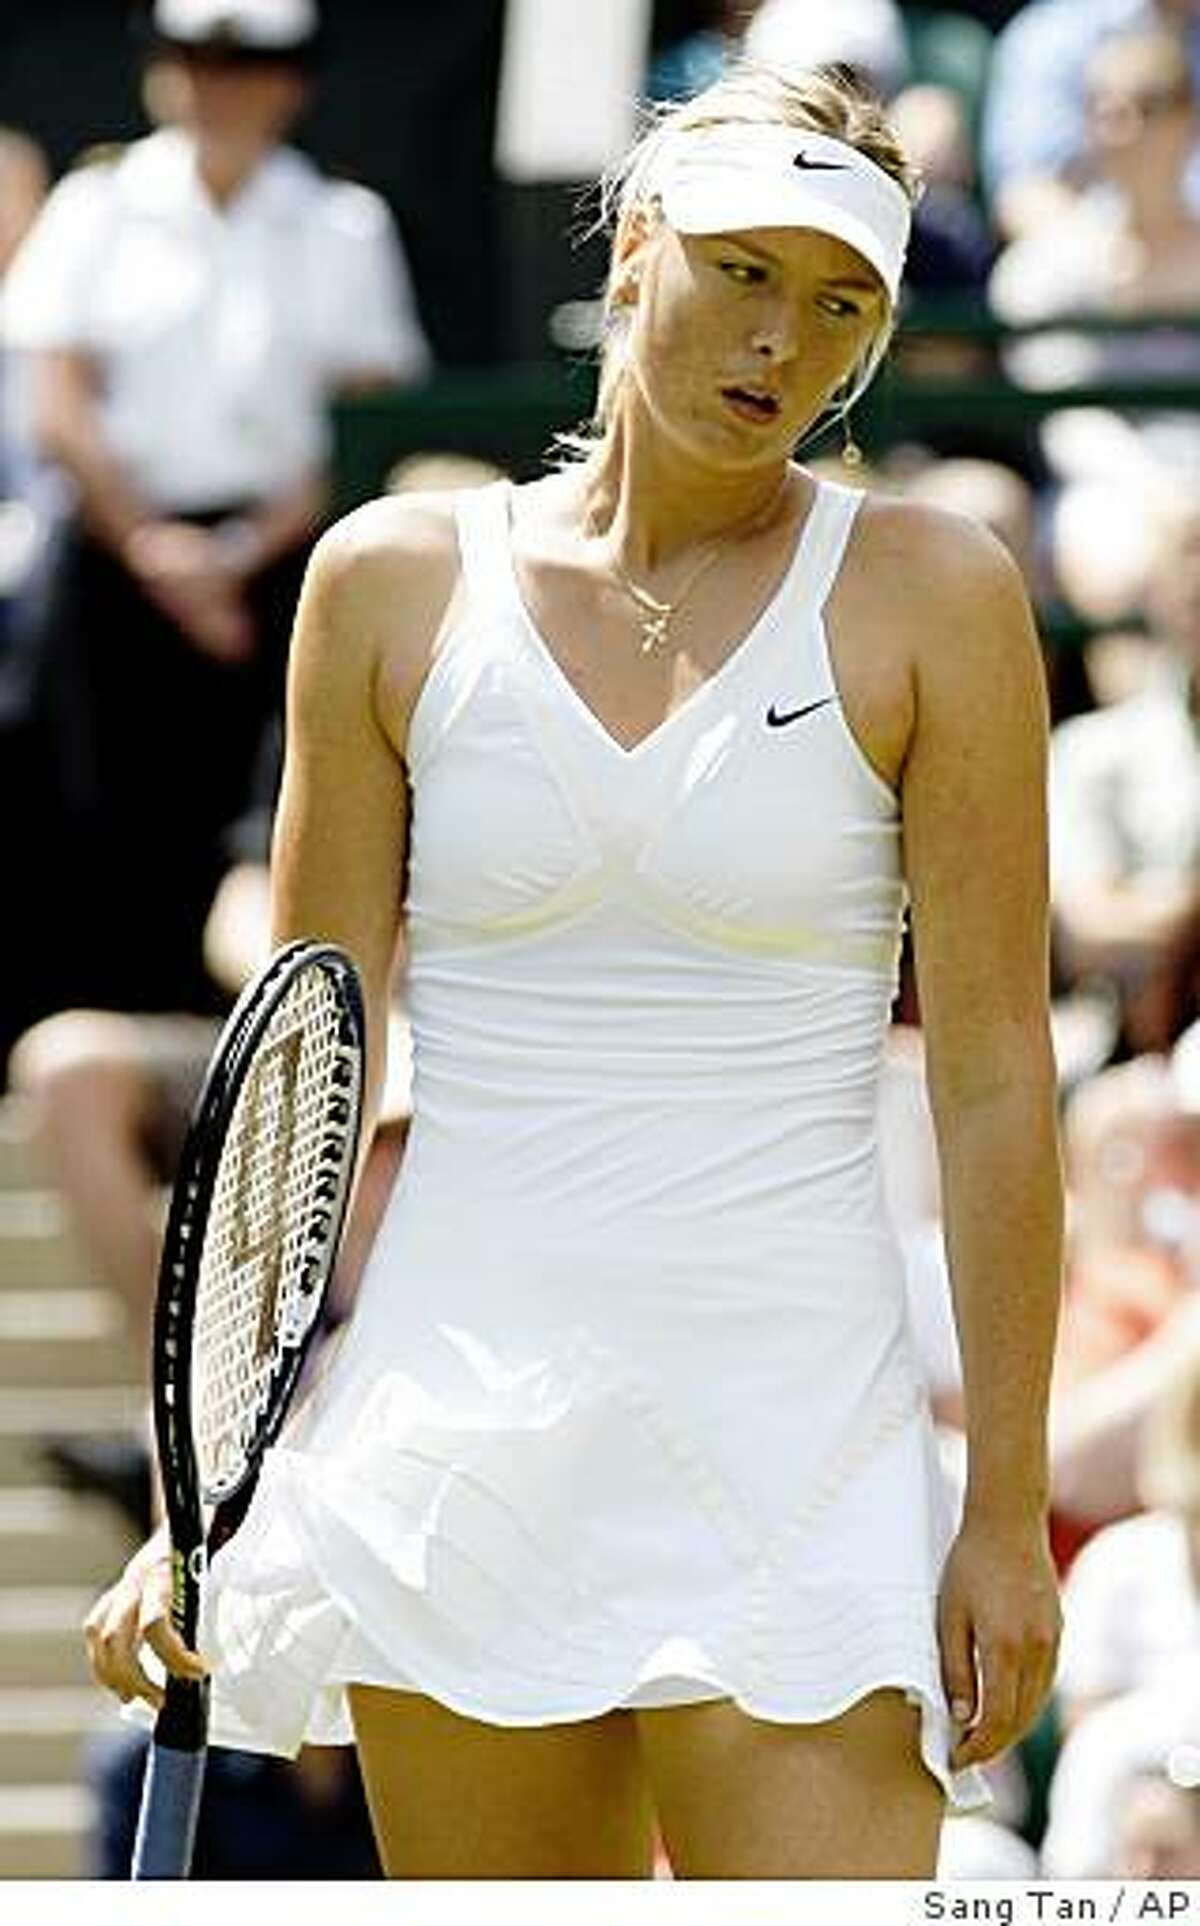 Maria Sharapova of Russia reacts during her women's singles match against Gisela Dulko of Argentina, on the Centre Court at Wimbledon, Wednesday, June 24, 2009. Dulko pulled off a surprise win over Sharapove.(AP Photo/Sang Tan)